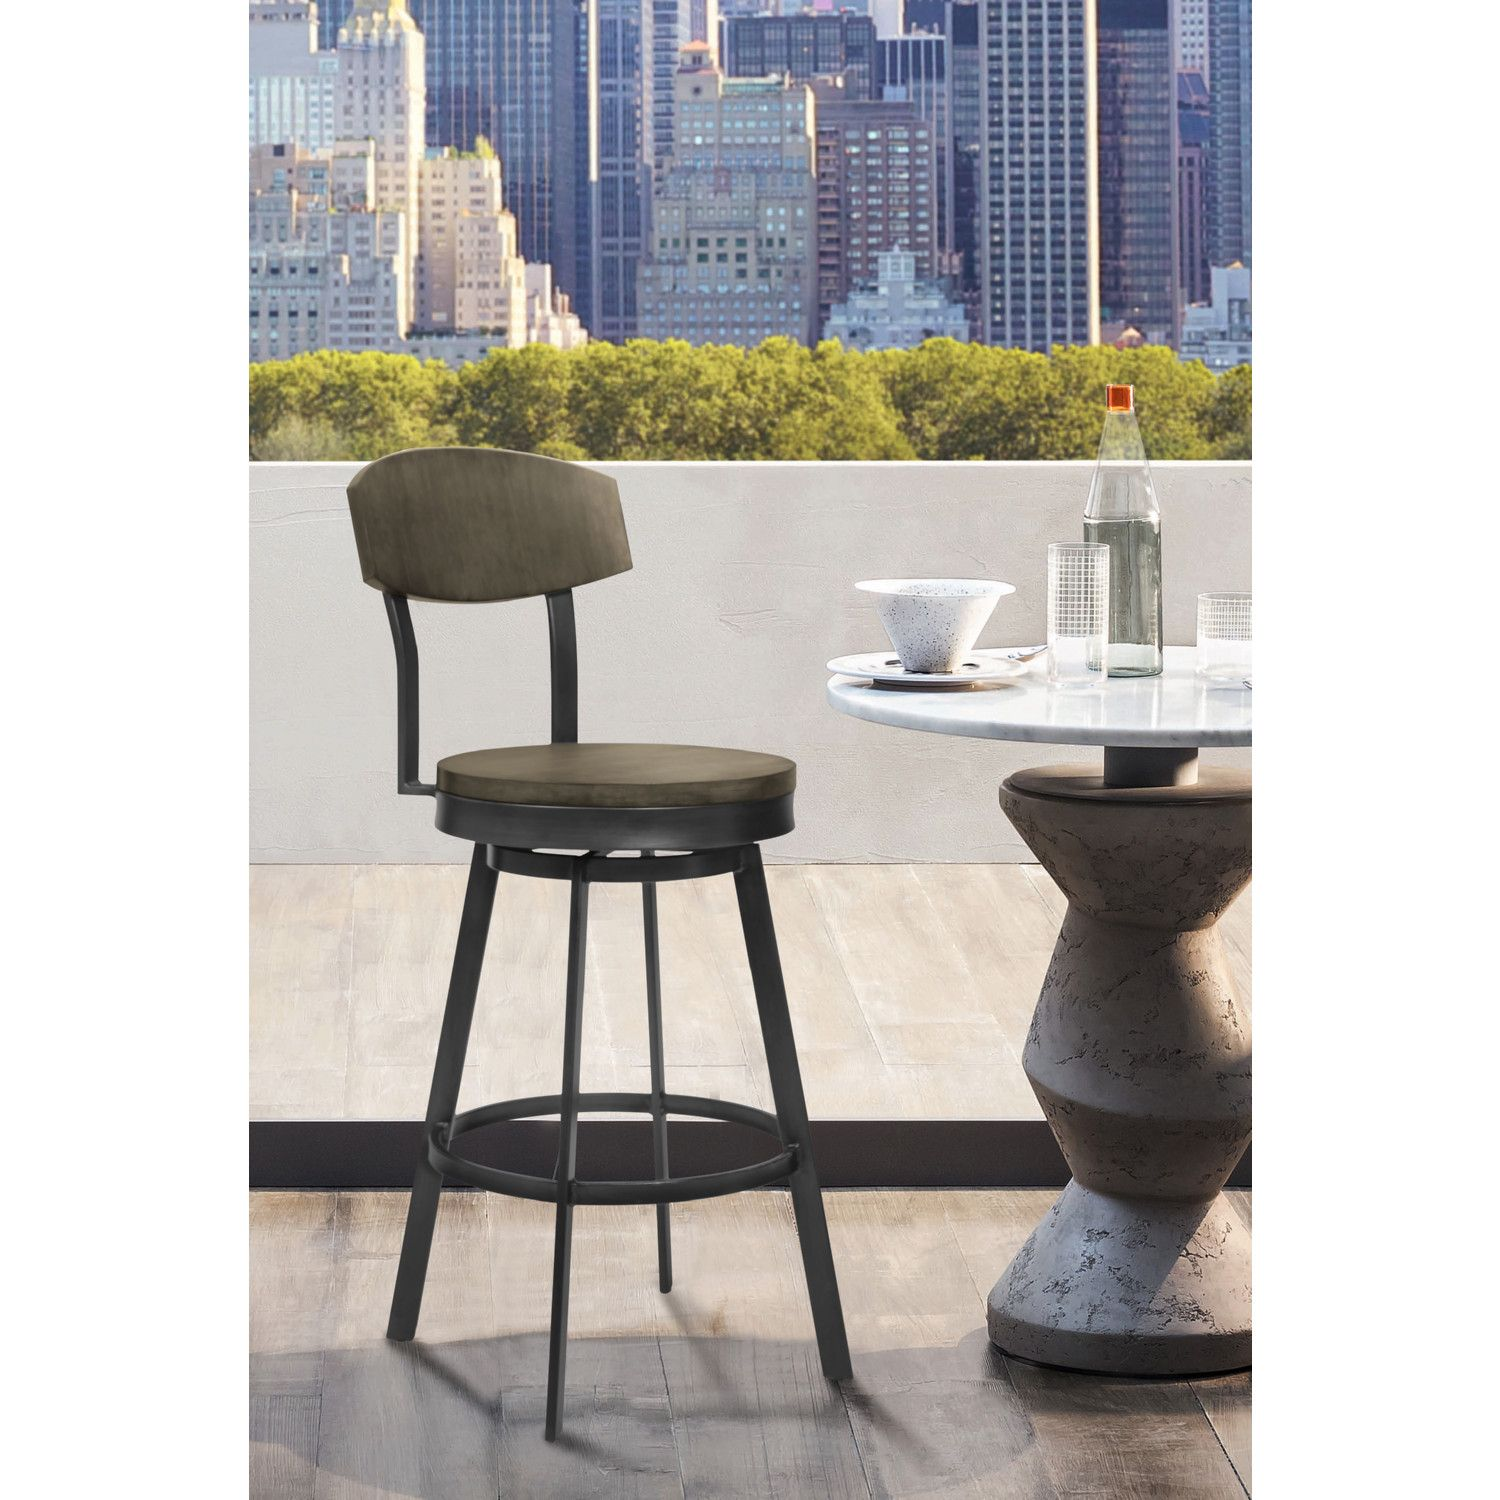 Swell Conway 26 Counter Stool In Mineral Grey Metal Grey Walnut Forskolin Free Trial Chair Design Images Forskolin Free Trialorg